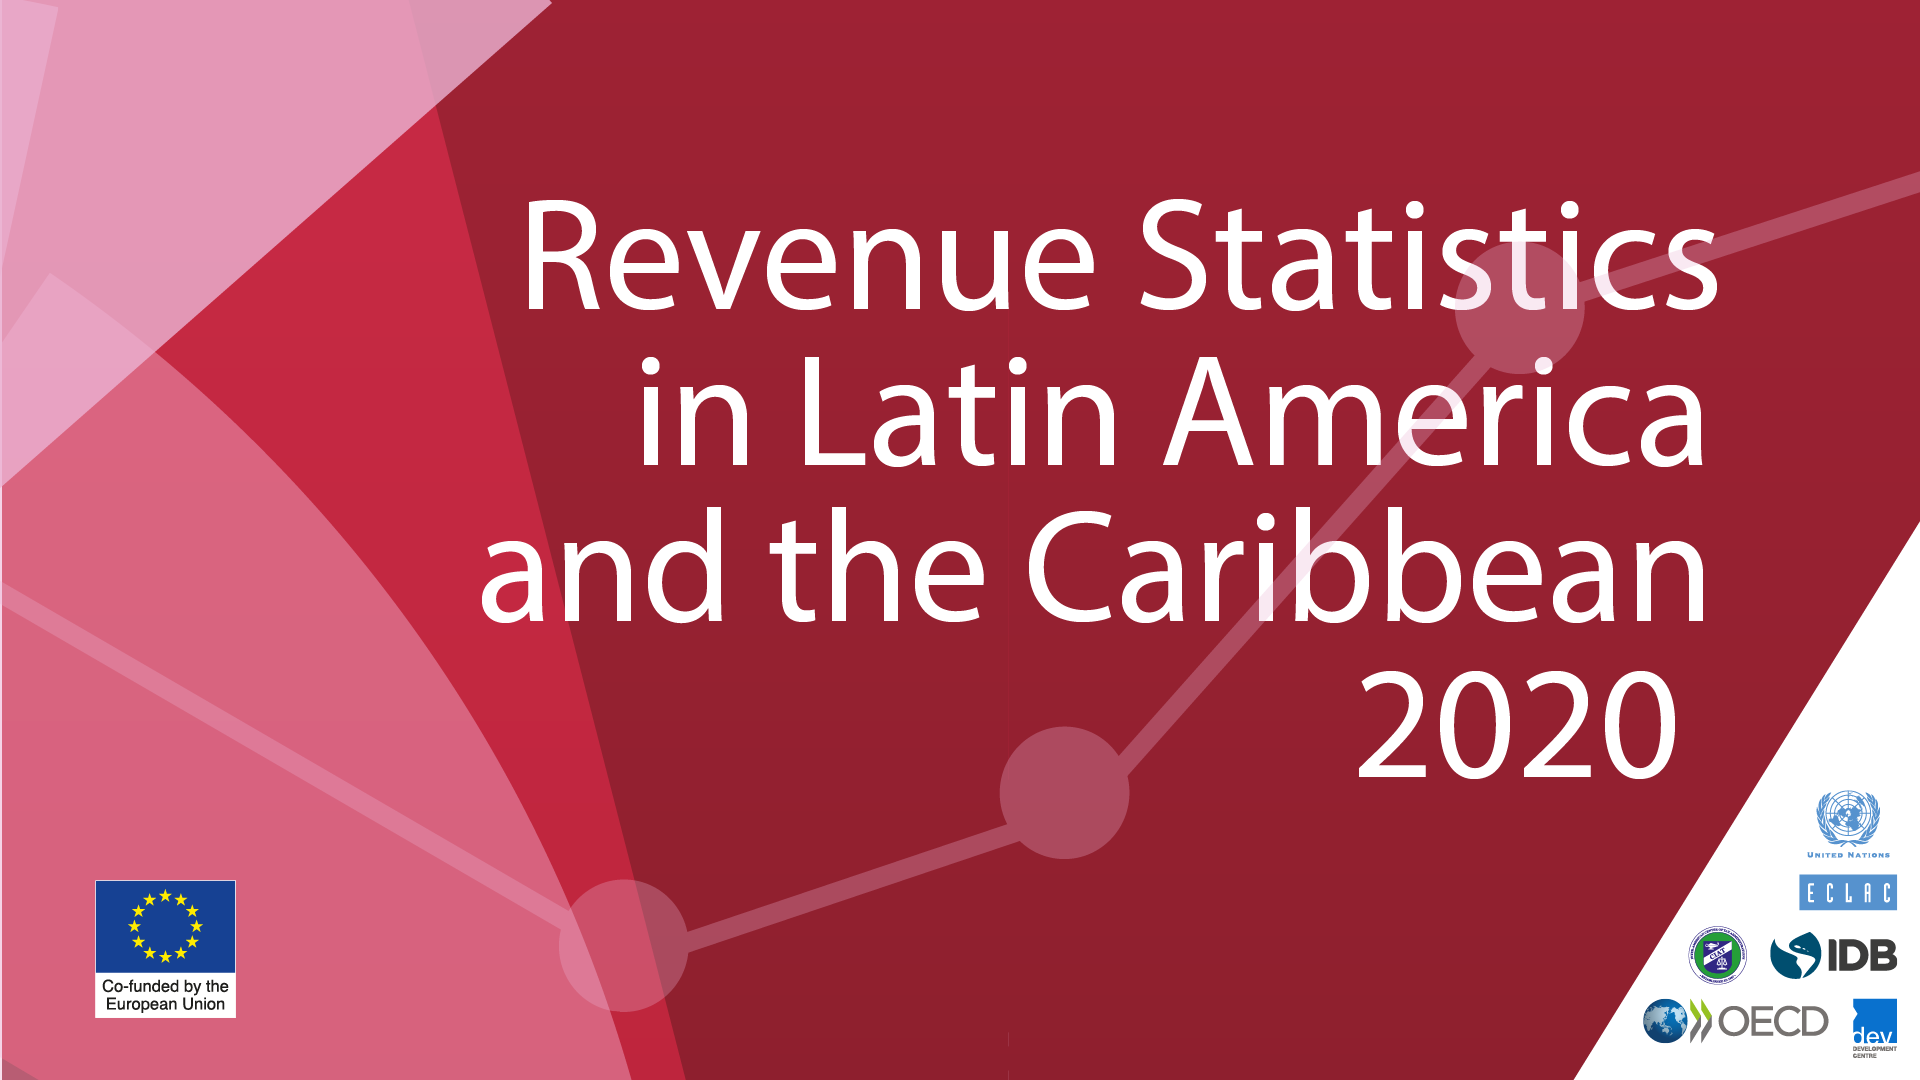 Revenue Statistics in Latin America in the Caribbean